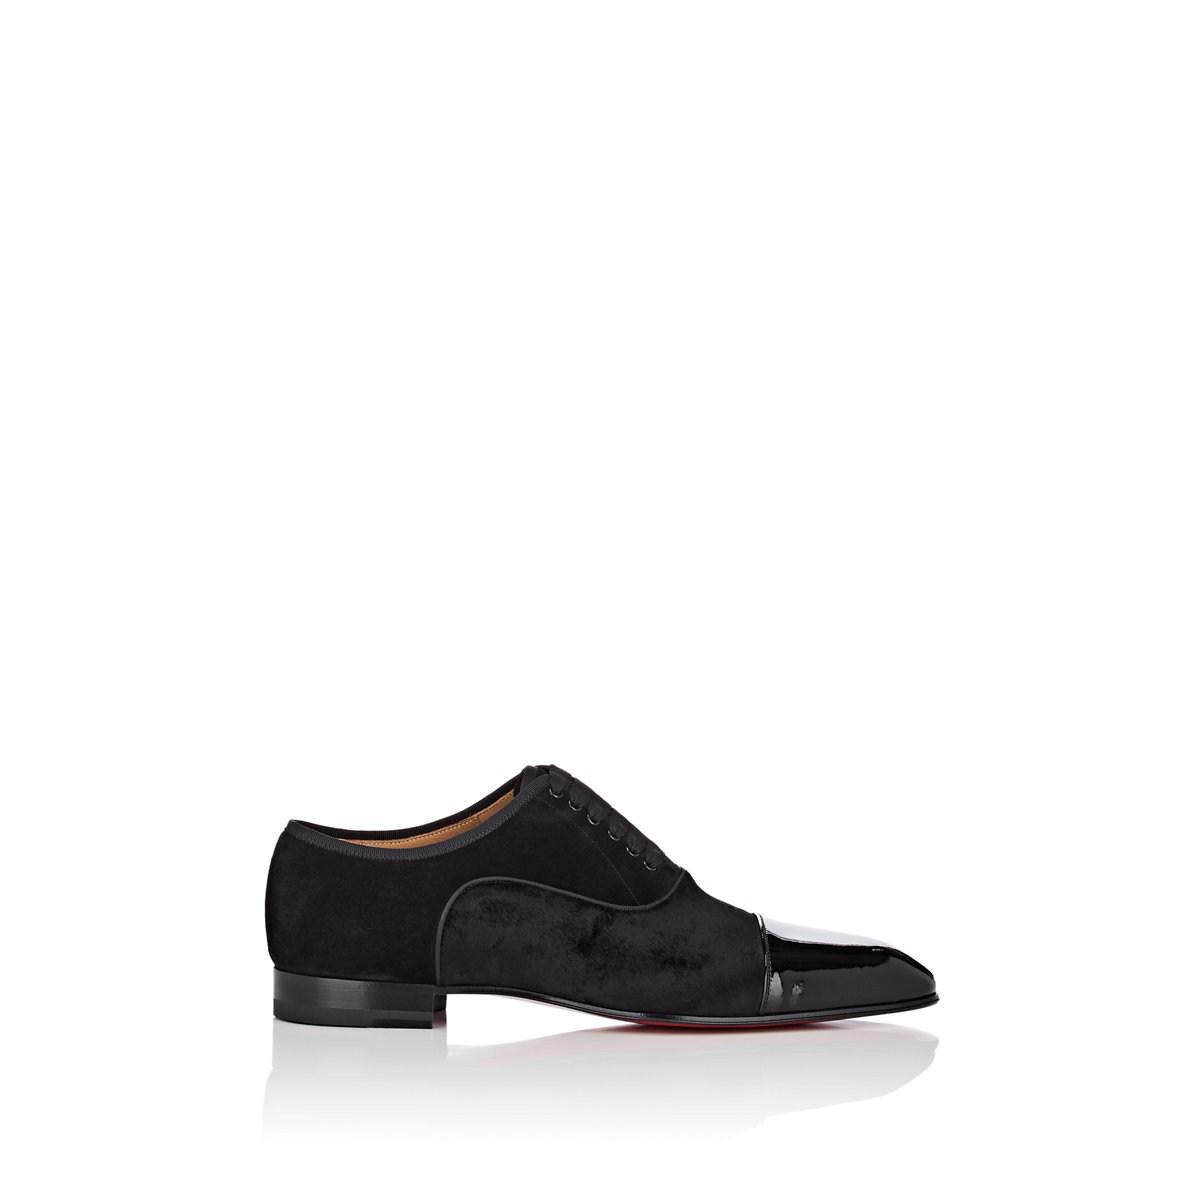 Sale Cheapest Mens Greggo Flat Suede & Velvet Balmorals Christian Louboutin Buy Cheap Geniue Stockist Free Shipping Deals Buy Cheap Price Cheap on6S5XMs